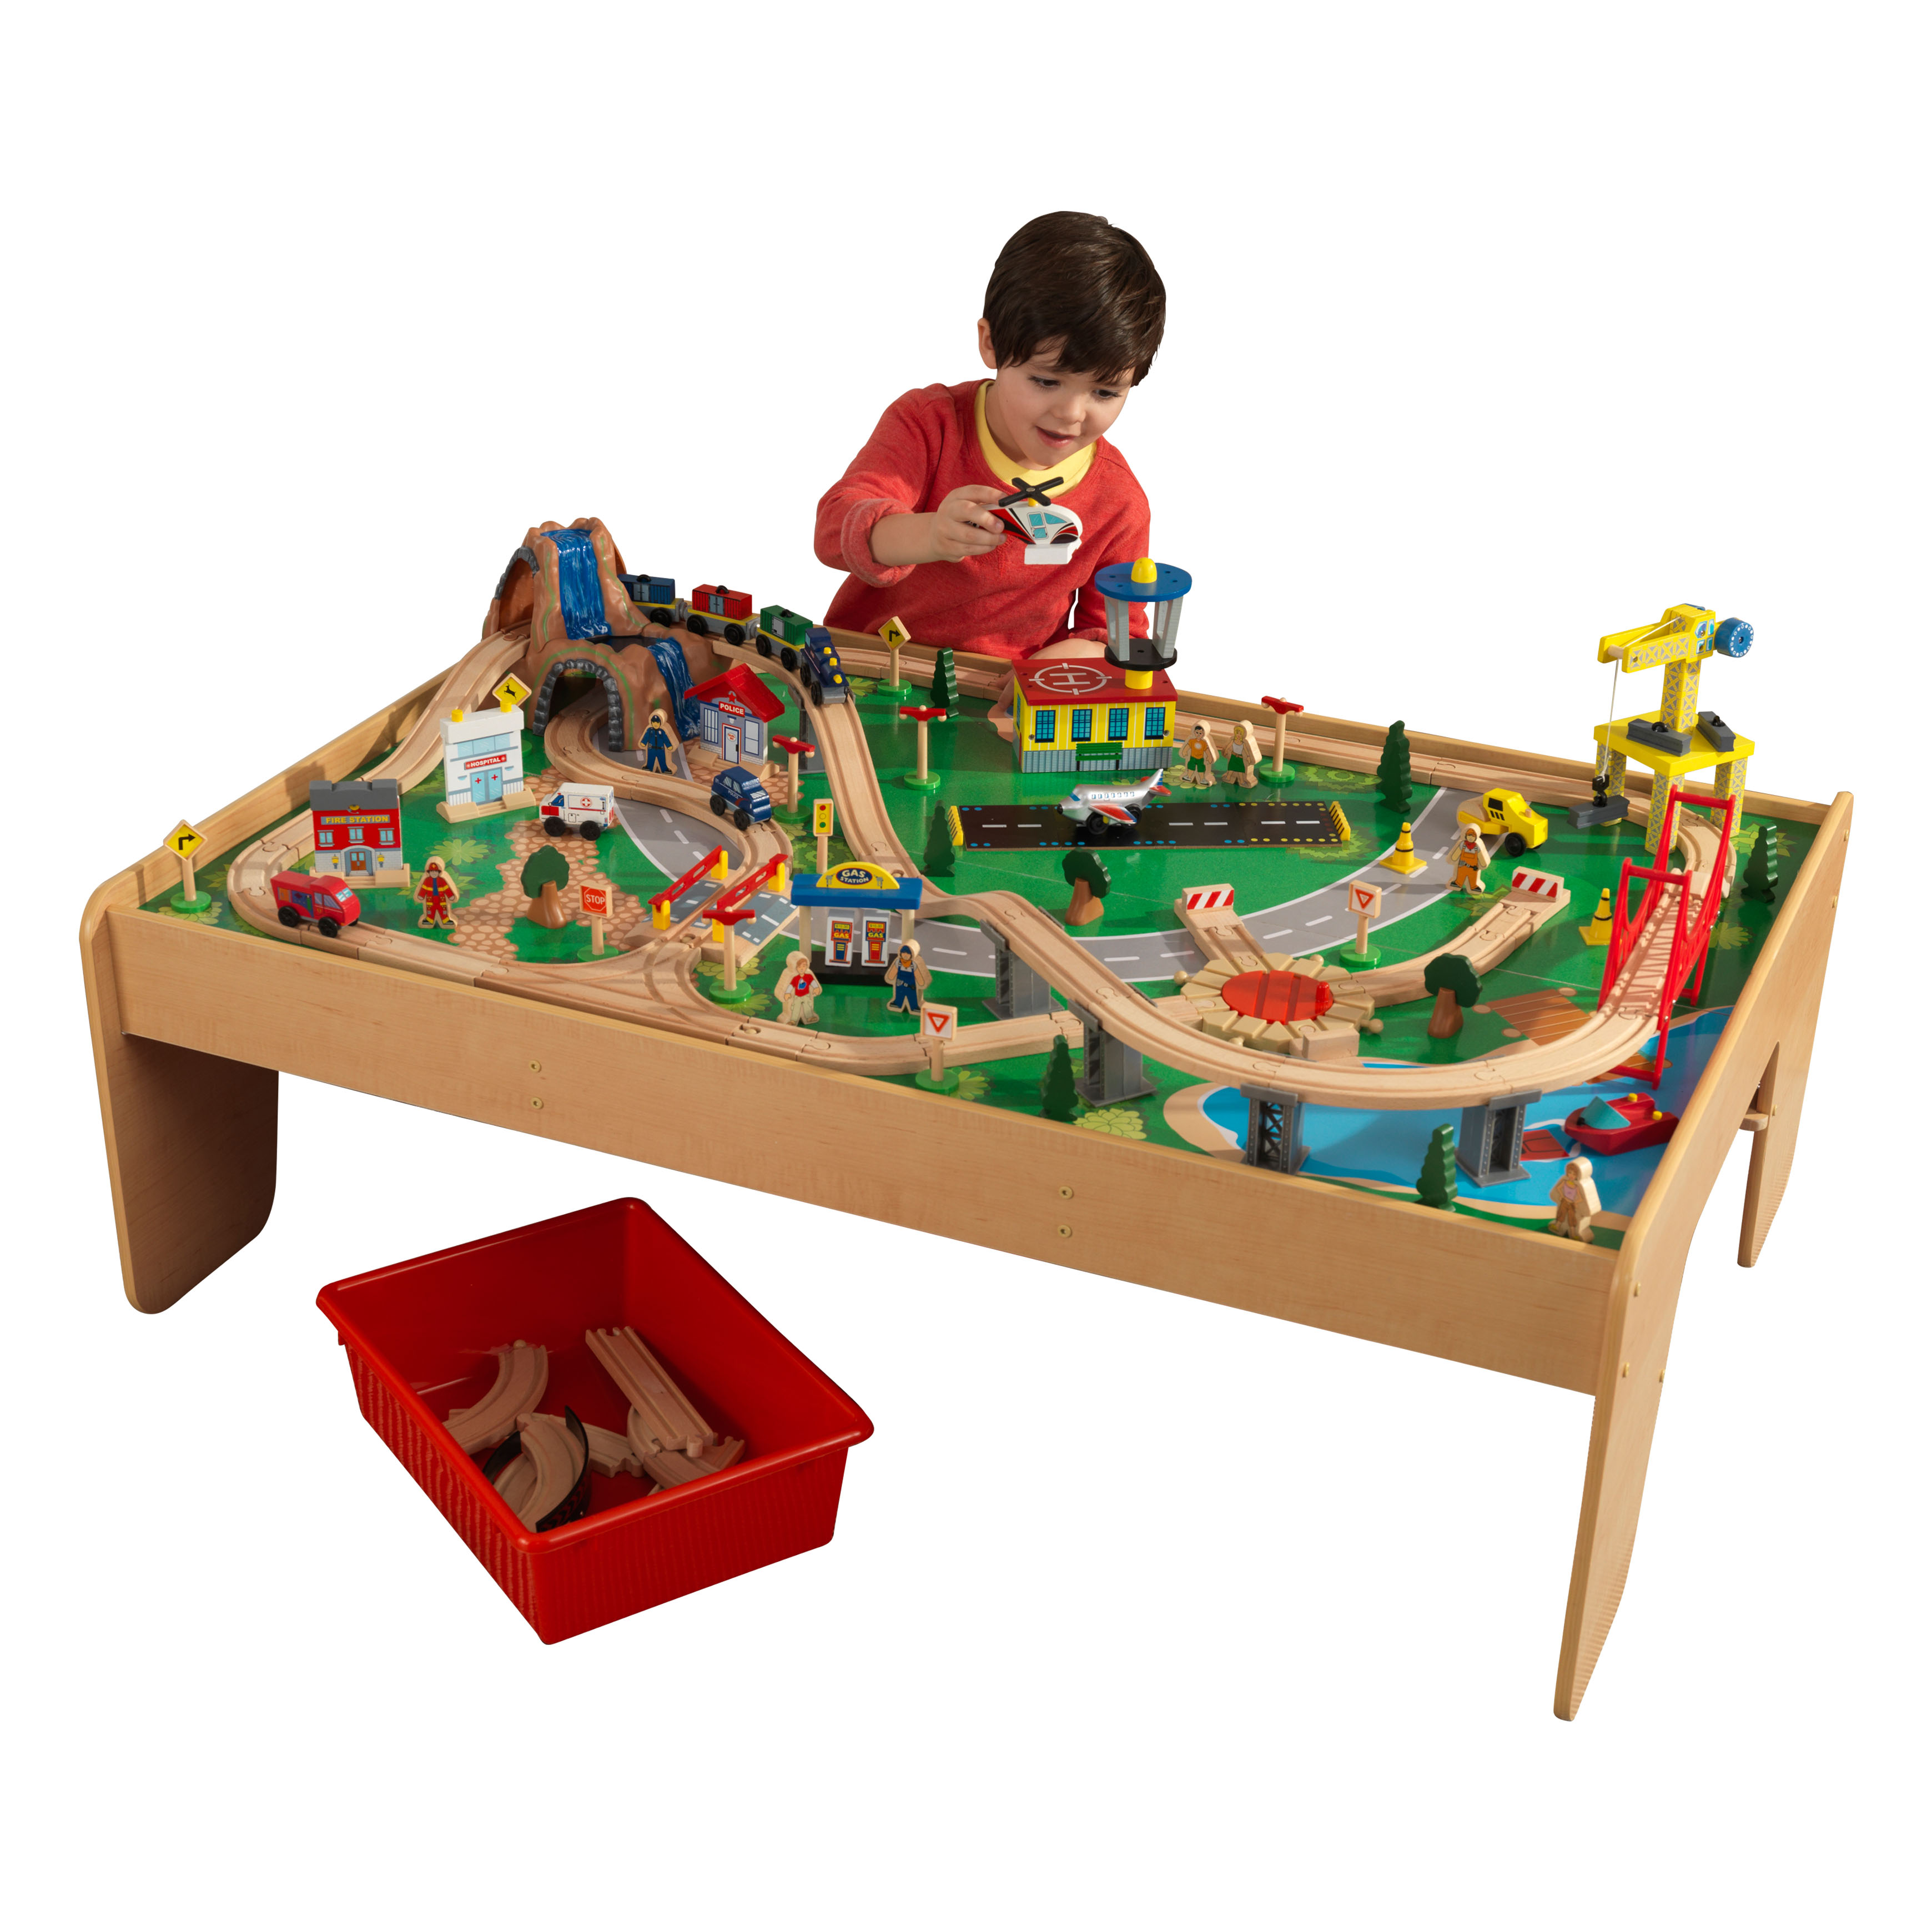 KidKraft Waterfall Mountain Train Set \u0026 Table with 120 accessories included  sc 1 st  Walmart & KidKraft Waterfall Mountain Train Set \u0026 Table with 120 accessories ...